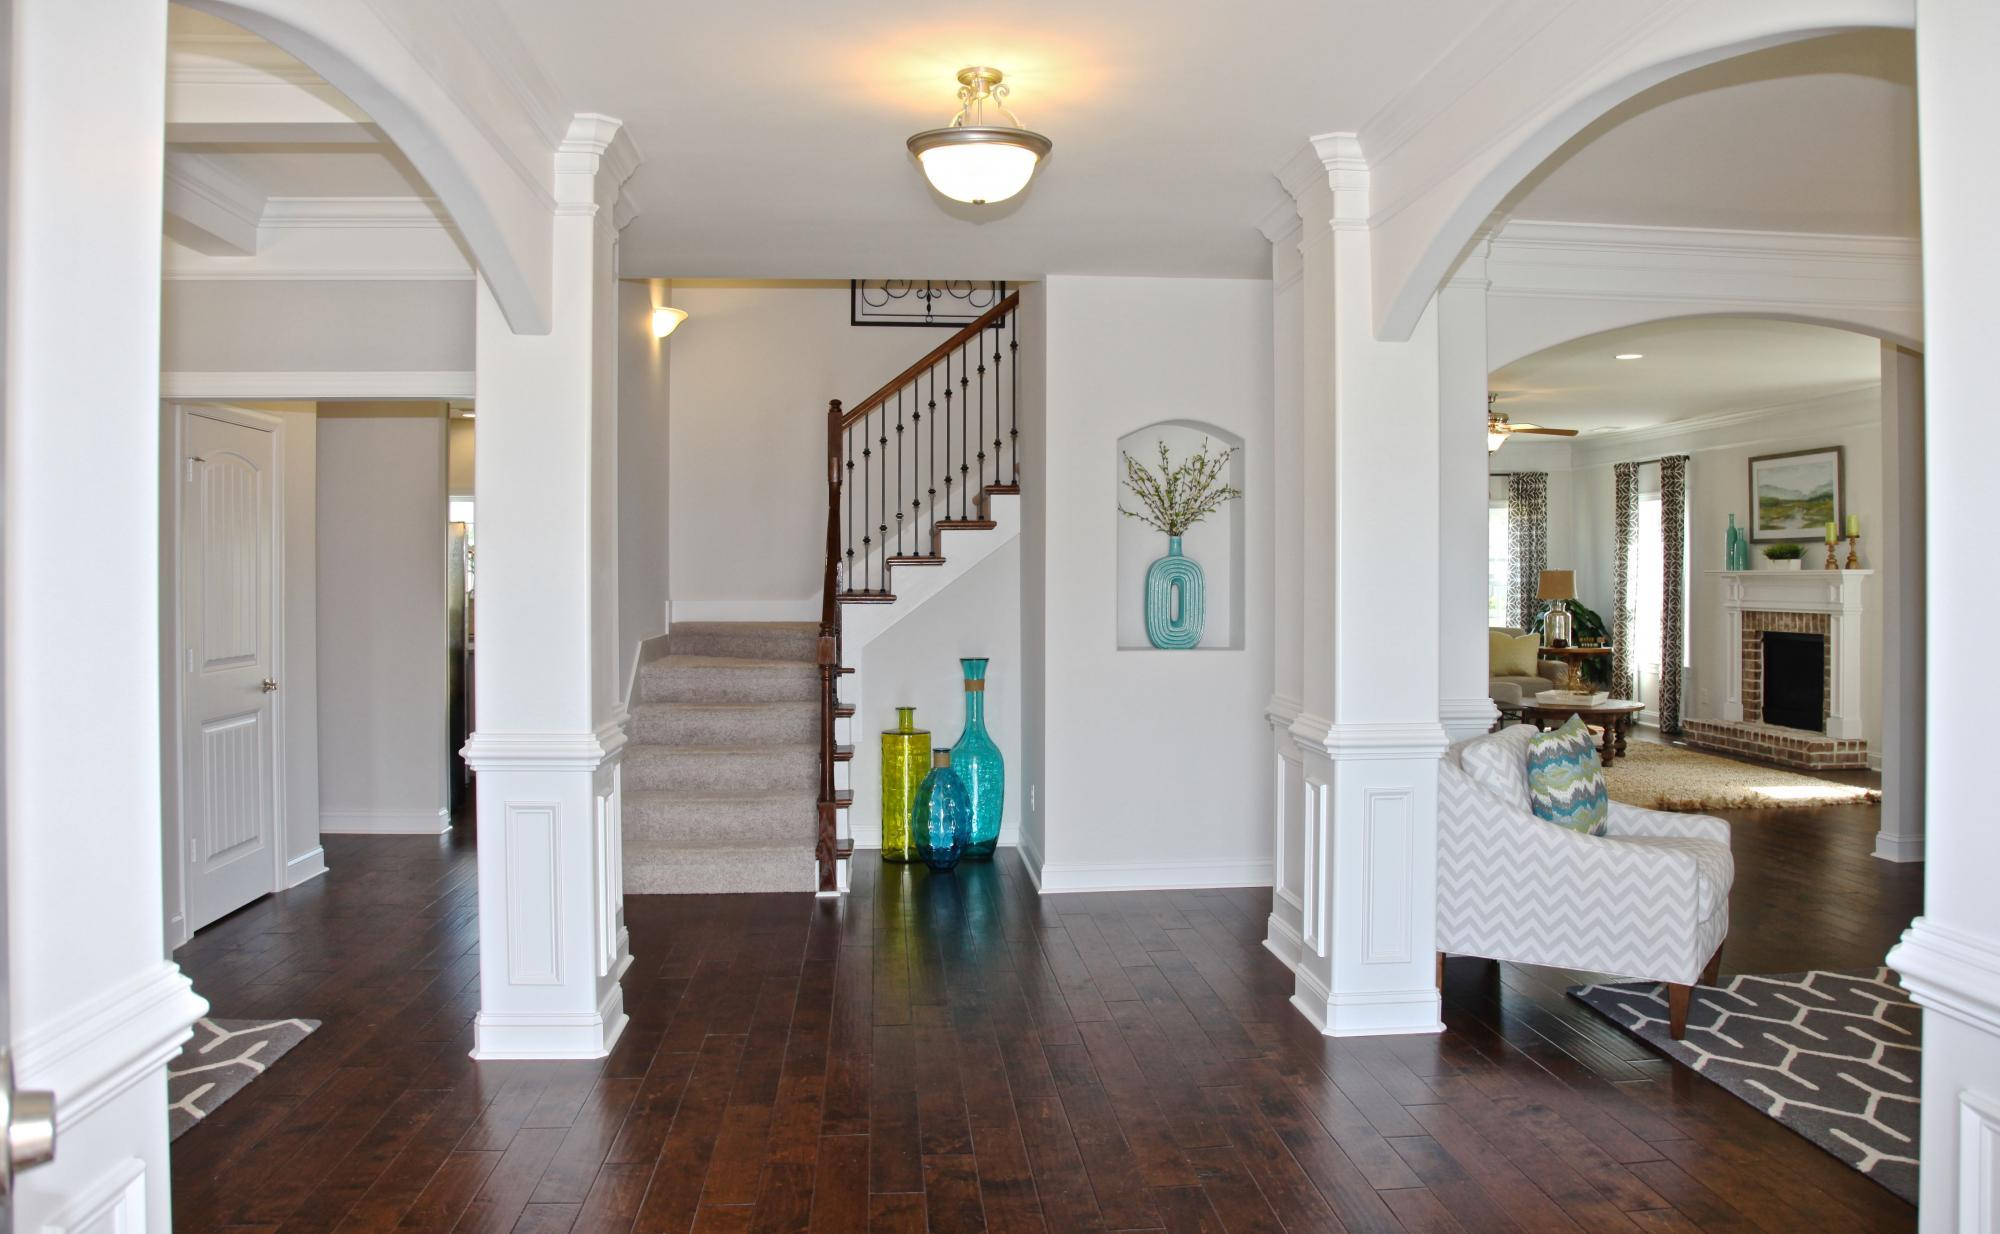 Living Area featured in the Oglethorpe By Konter Quality Homes in Savannah, GA